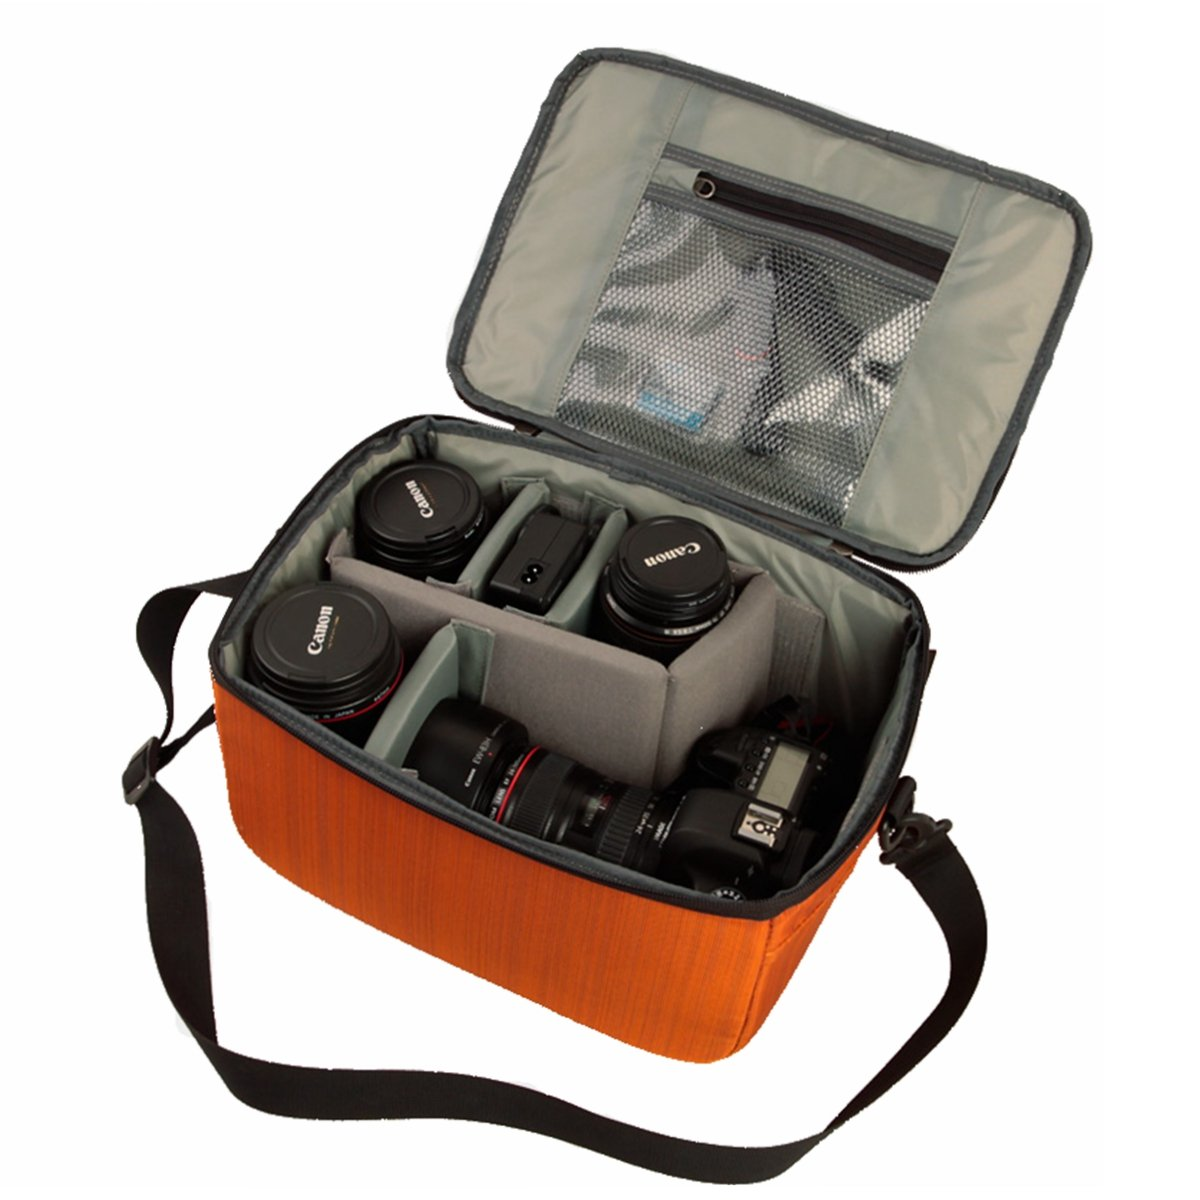 DSLR Bag Camera Insert Bag Camera Inner Case lens case 12.9 '' * 9'' * 6.2'' for Sony Canon Nikon Olympus Pentax and etc by i-graphy